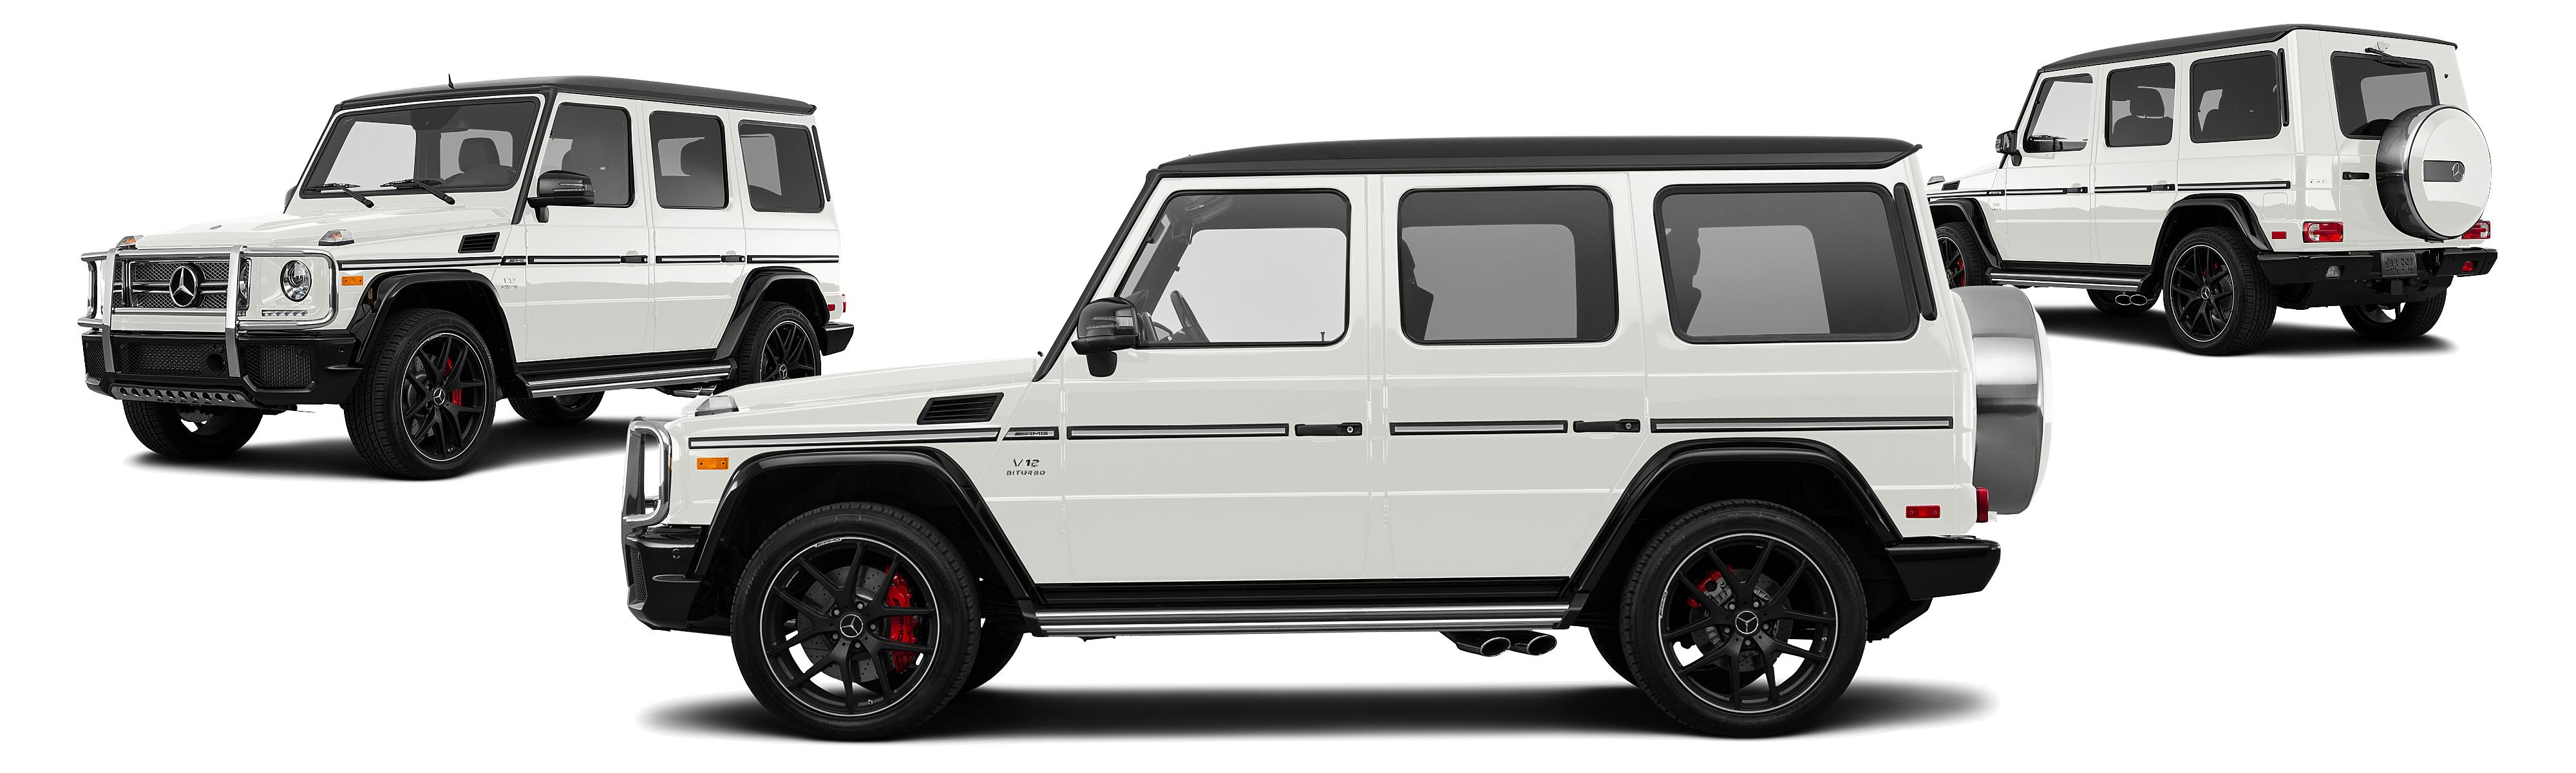 2017 Mercedes Benz G Class AWD AMG G 63 4MATIC 4dr SUV Research